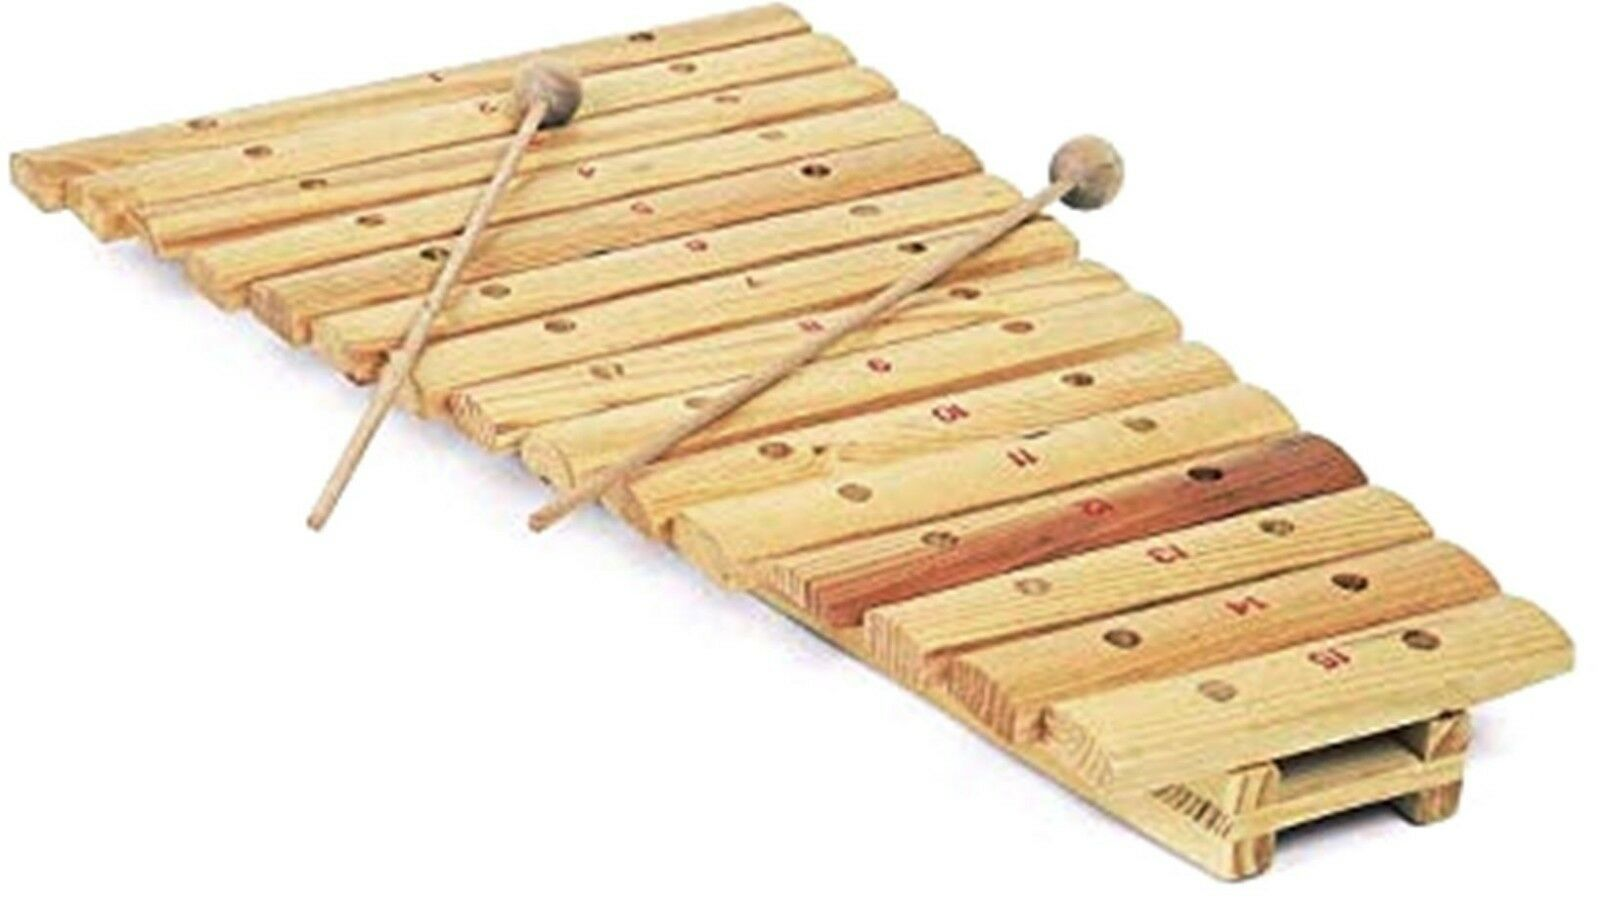 Toy Xylophone Wooden 15 Note Musical Instruments For Kids